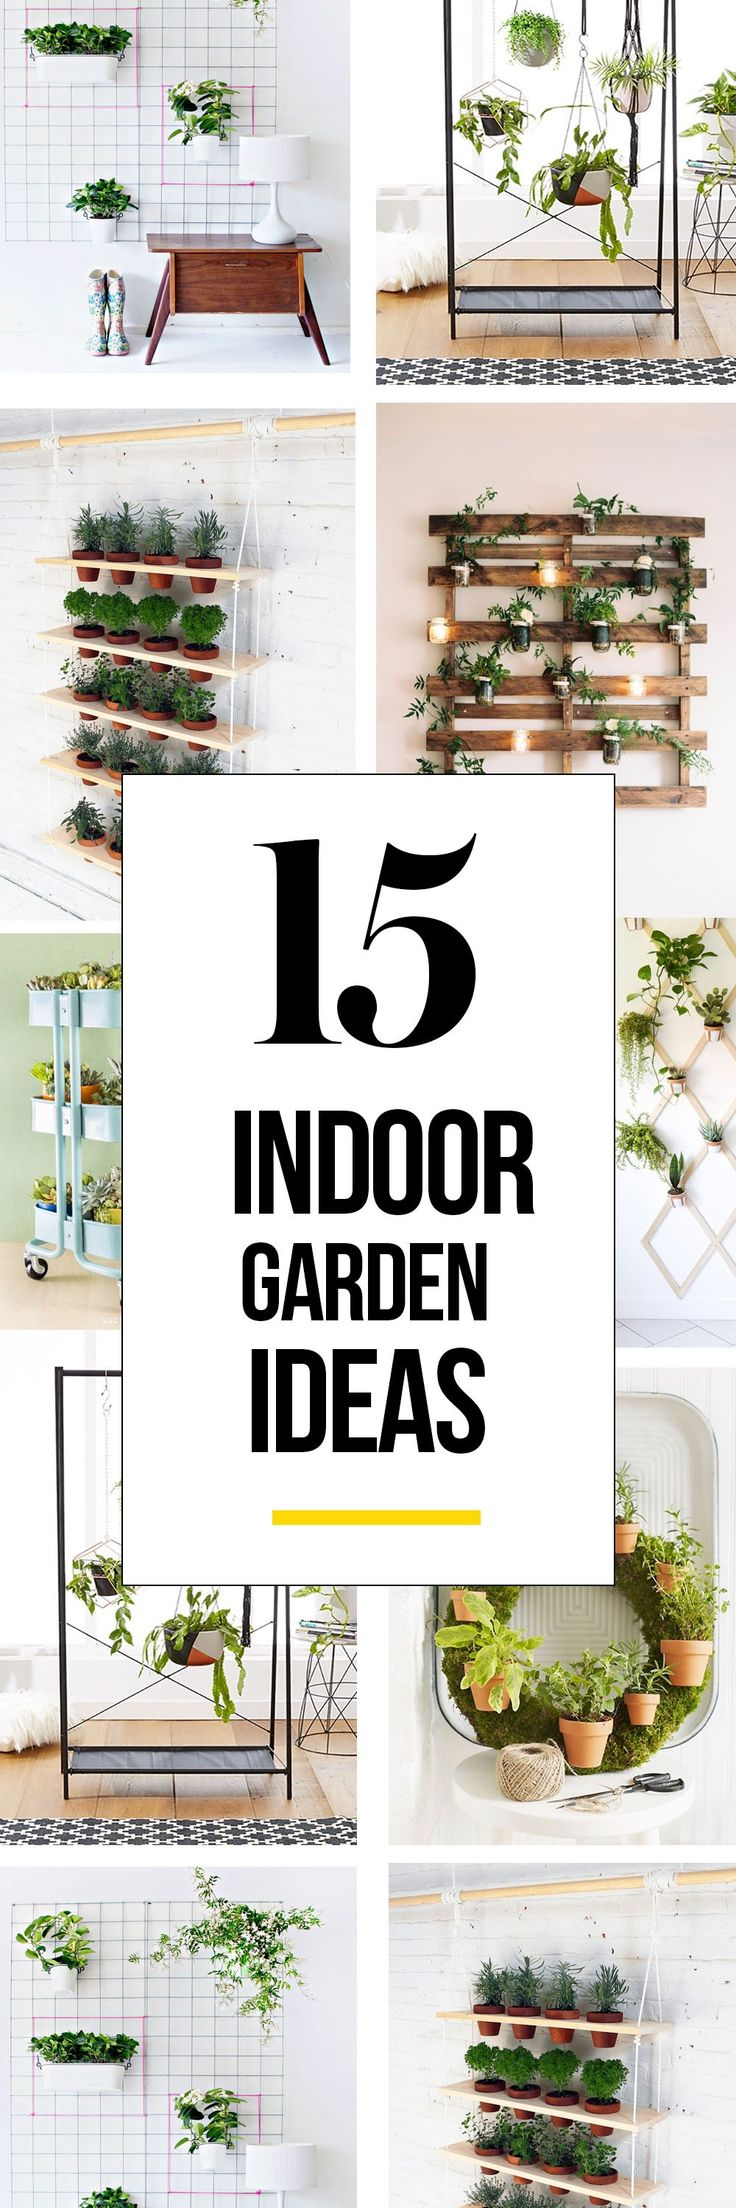 An indoor garden is just the right idea when you reside in a small space with no patio. These indoor garden ideas will prove your four walls to be a great space for your plantlife